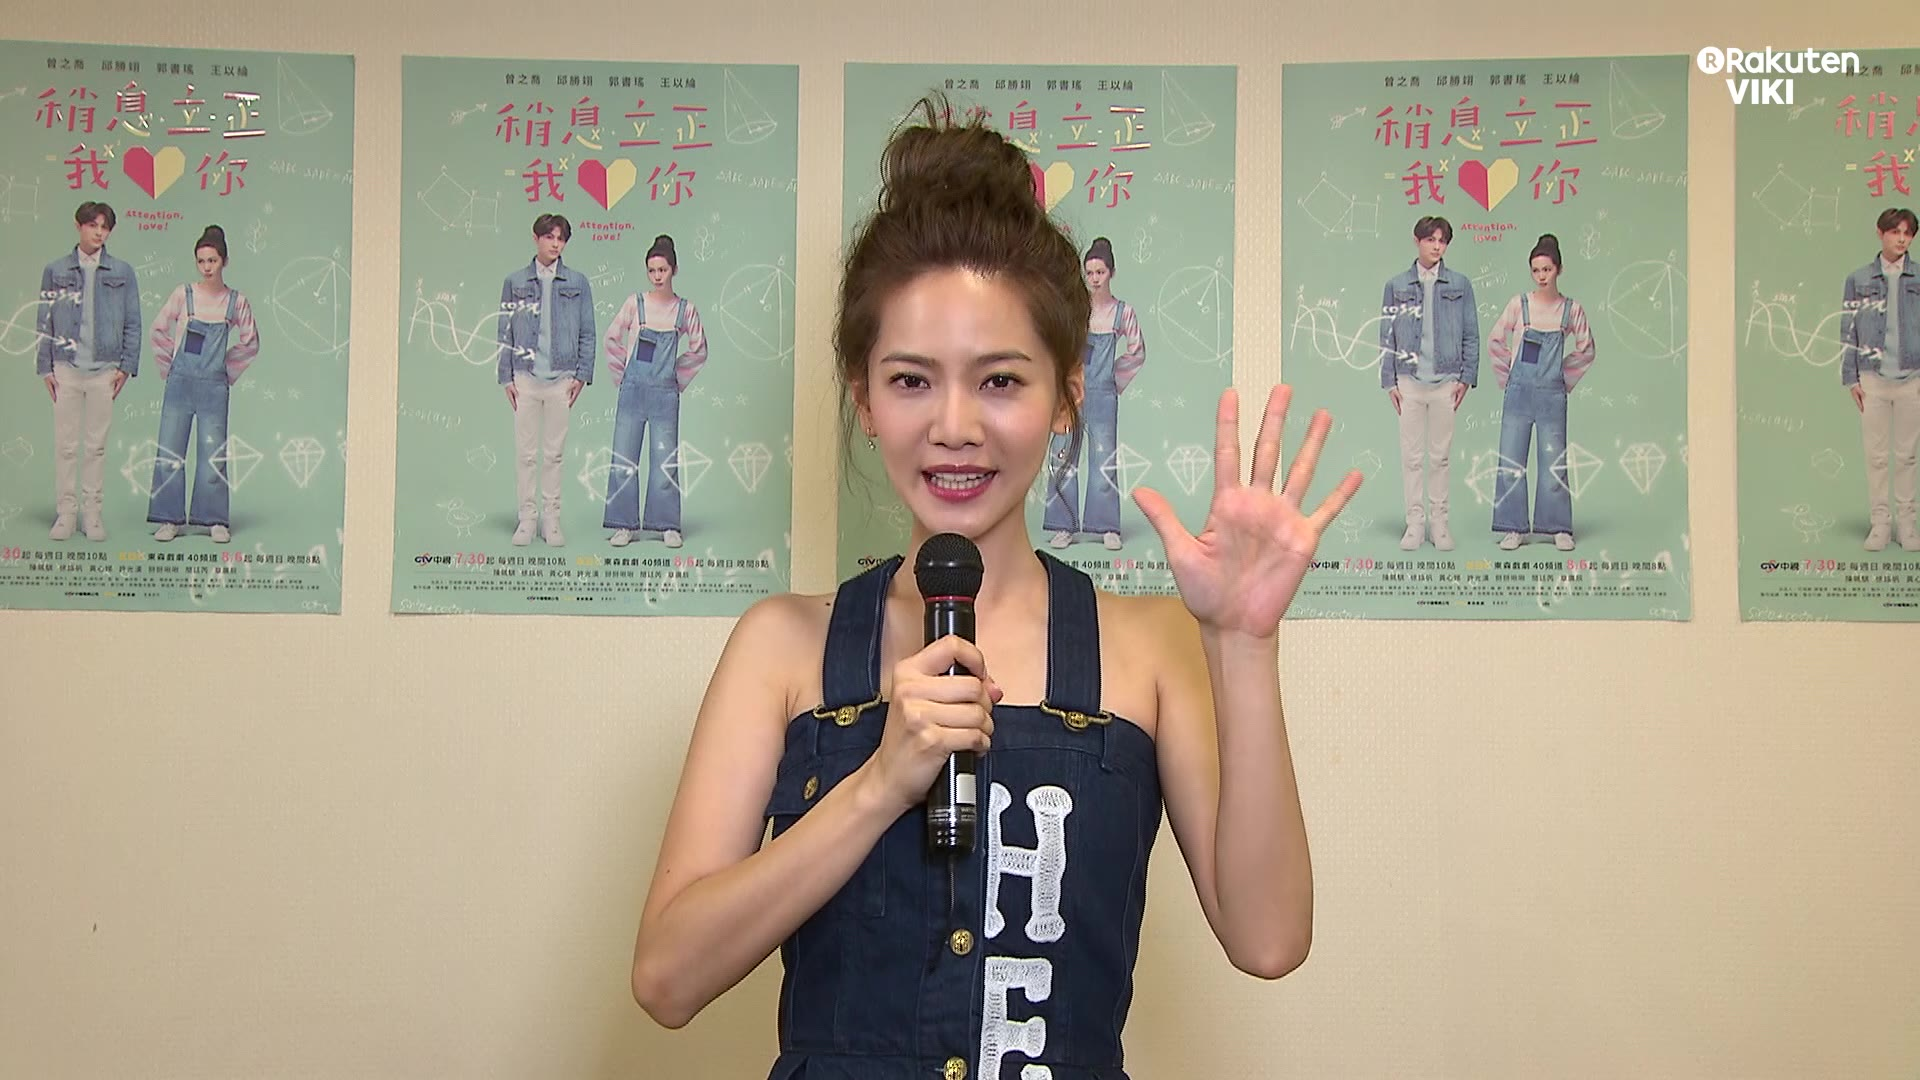 Joanne Tseng and Prince Chiu's Shoutout to Viki Fans: Attention, Love!